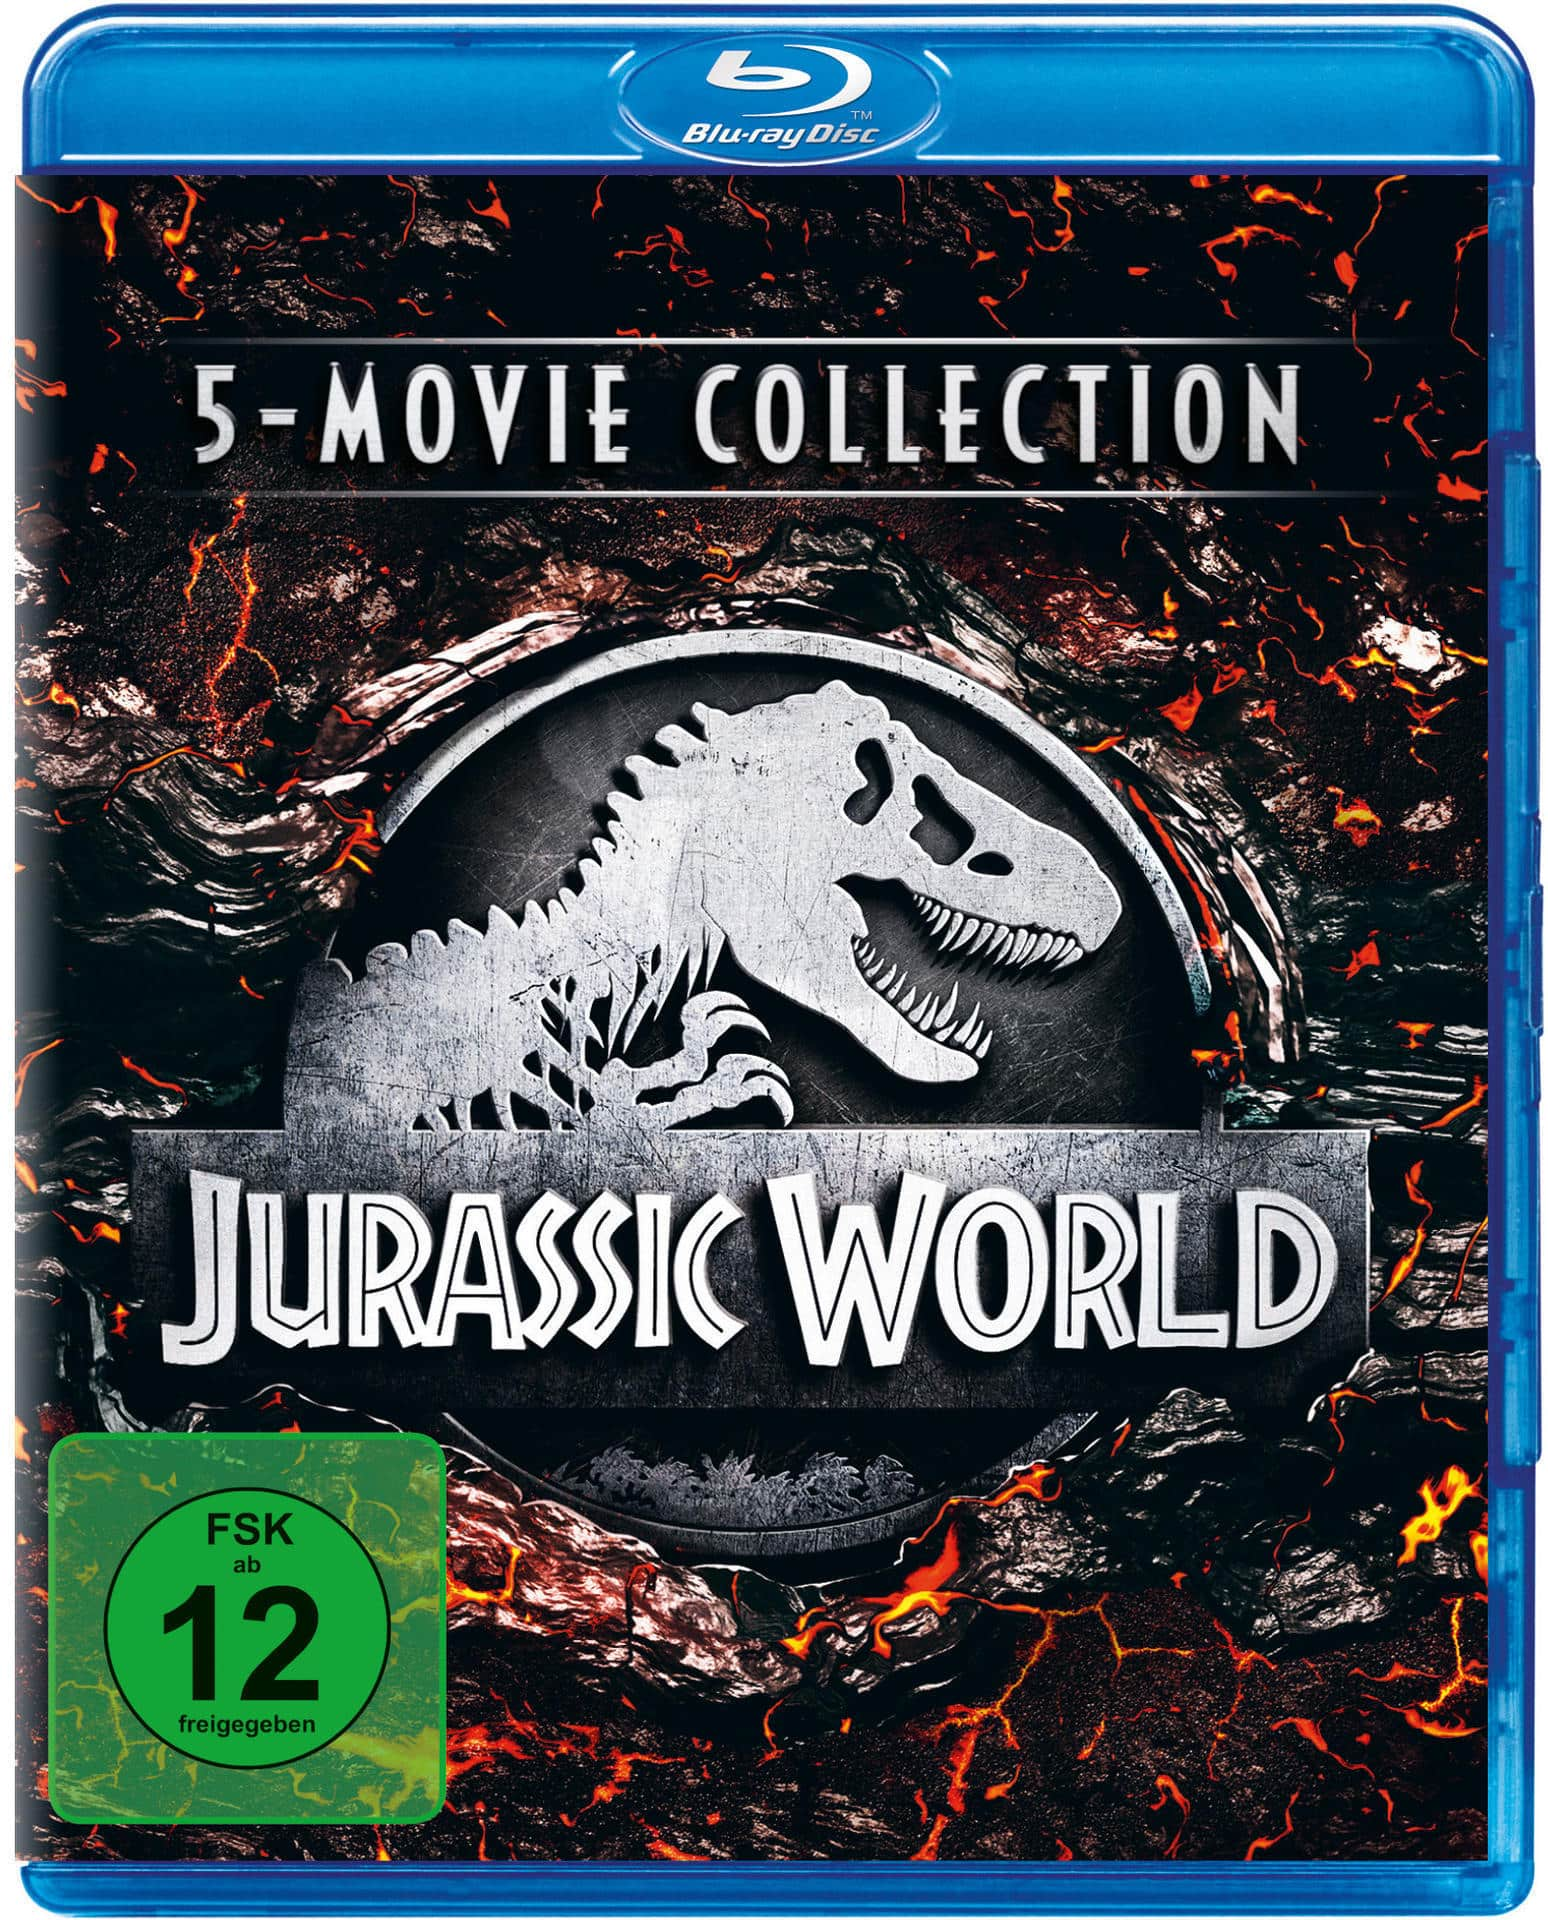 Jurassic World - 5-Movie Collection BLU-RAY Box (BLU-RAY) für 24,99 Euro